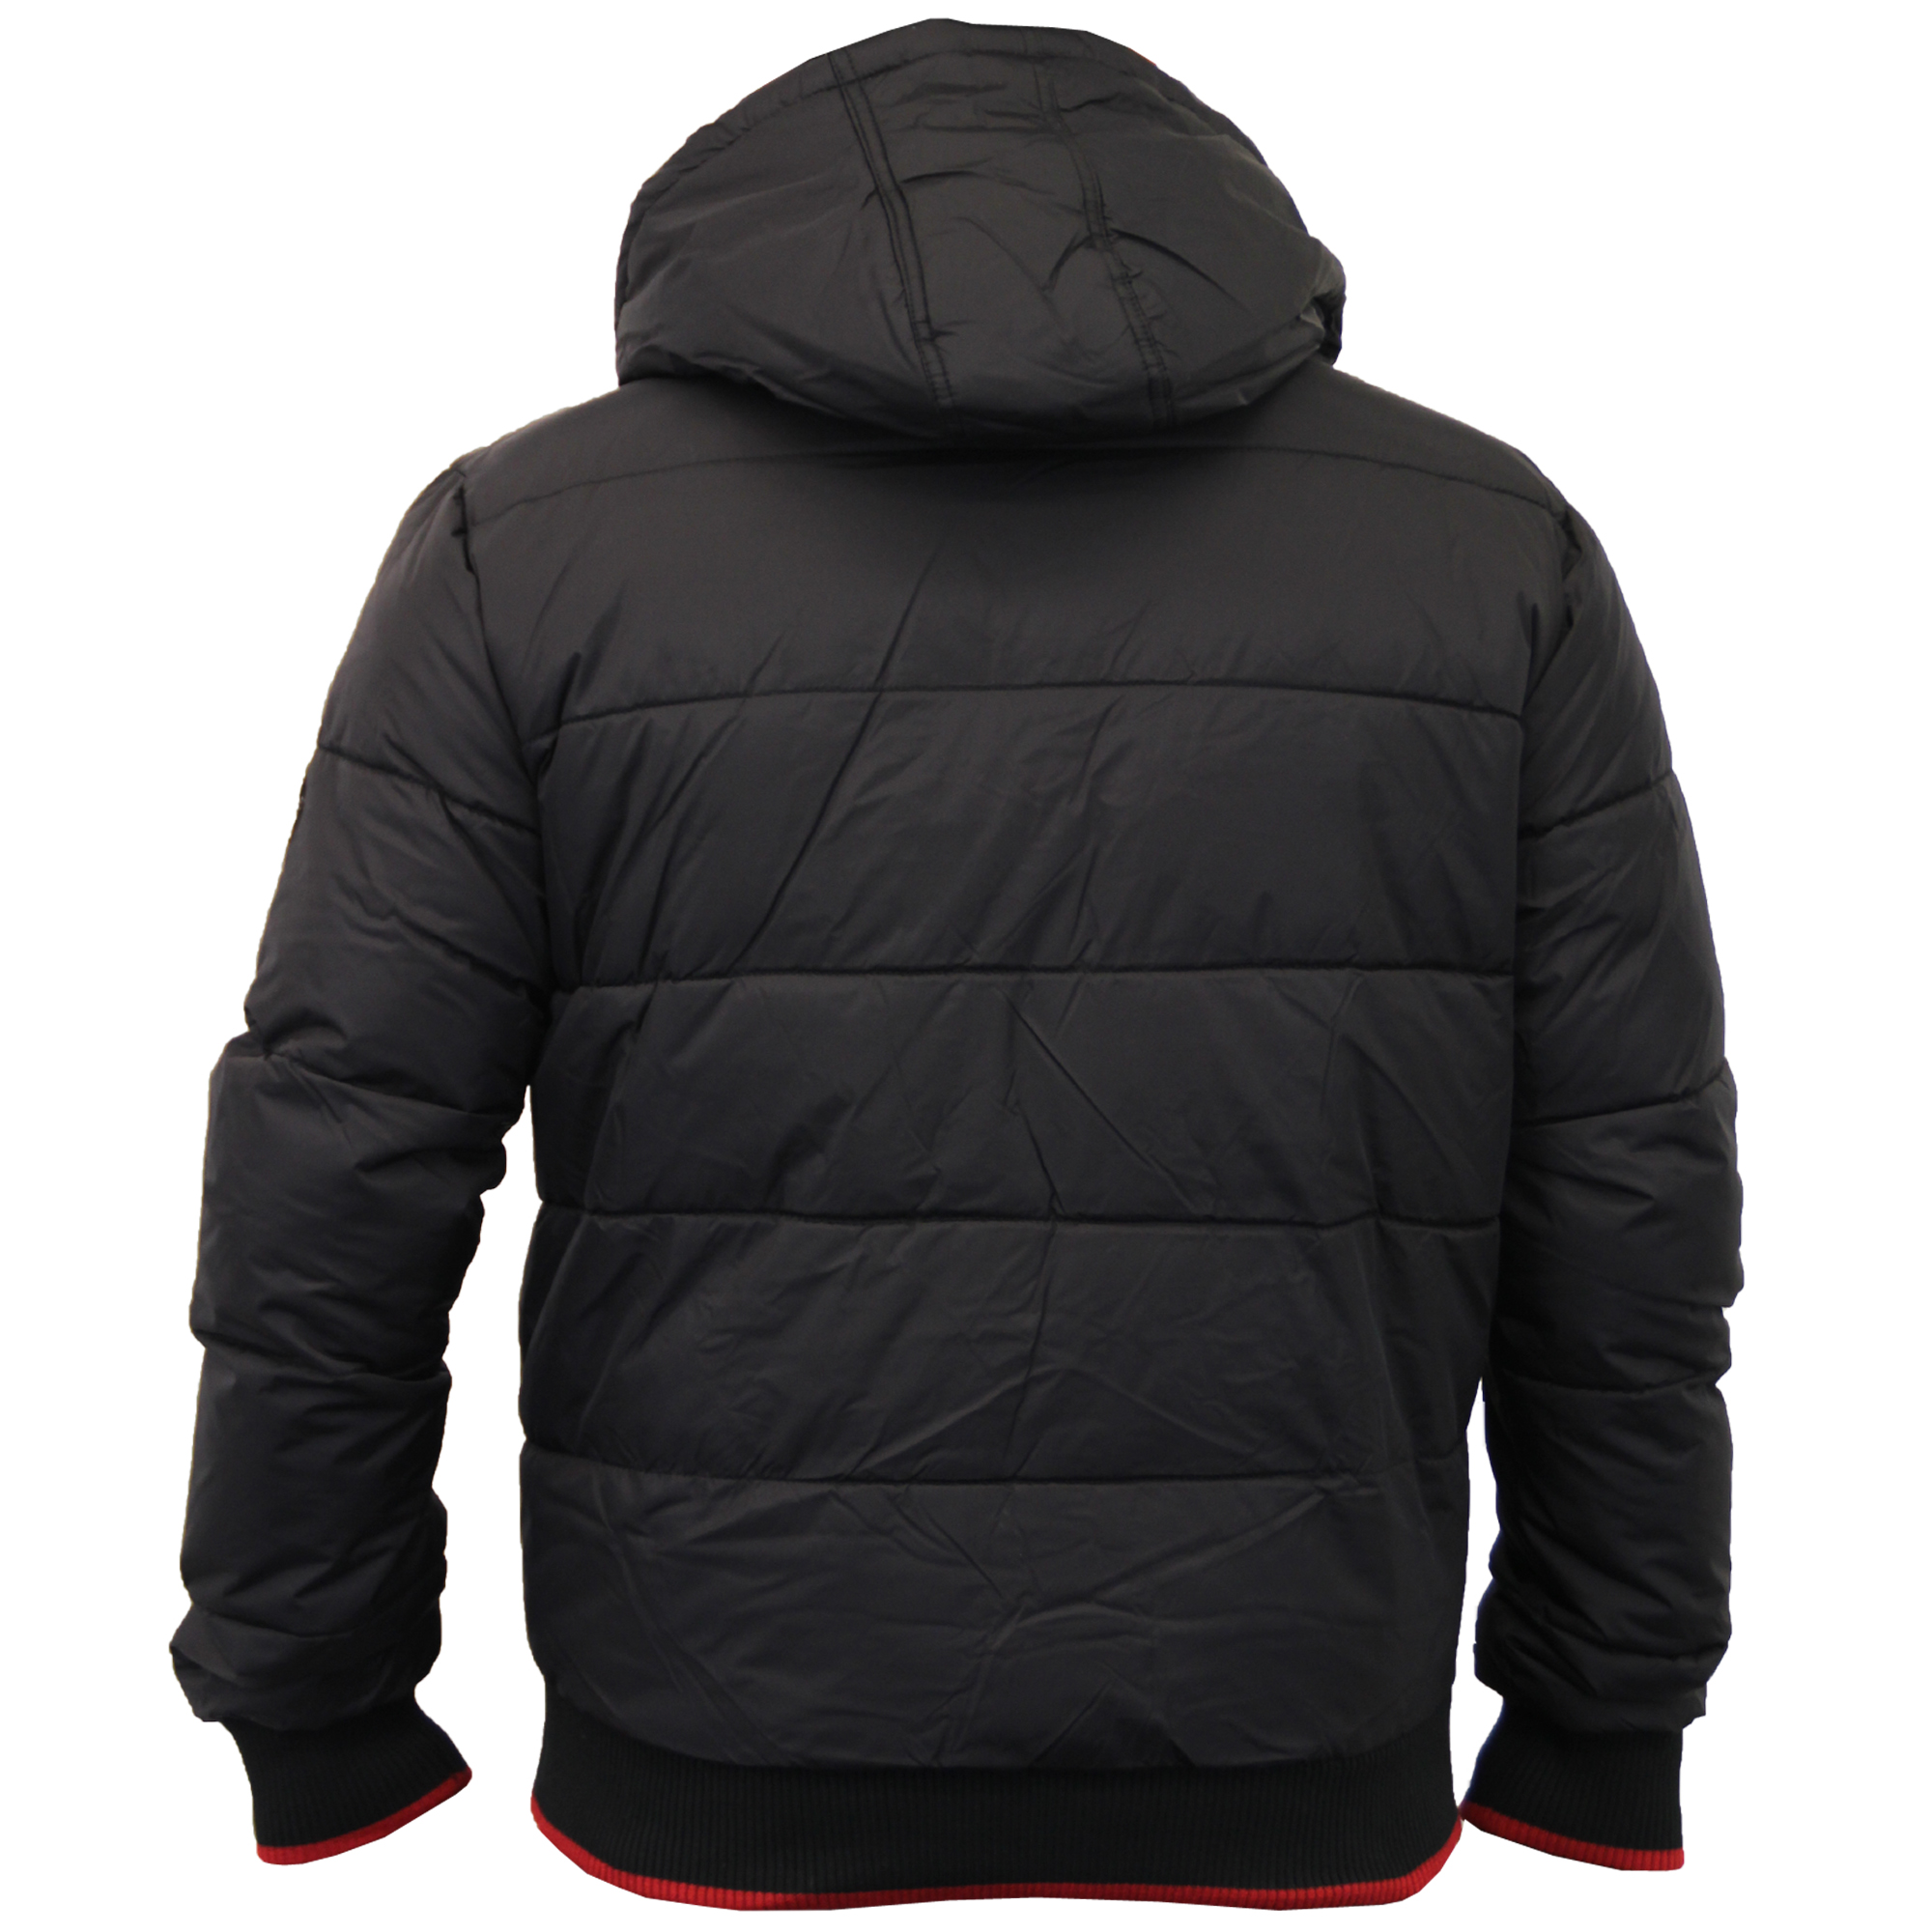 Shop quilted jackets for men at newbez.ml Next day delivery and free returns available. s of products online. Buy men's wadded jackets and quilted styles!